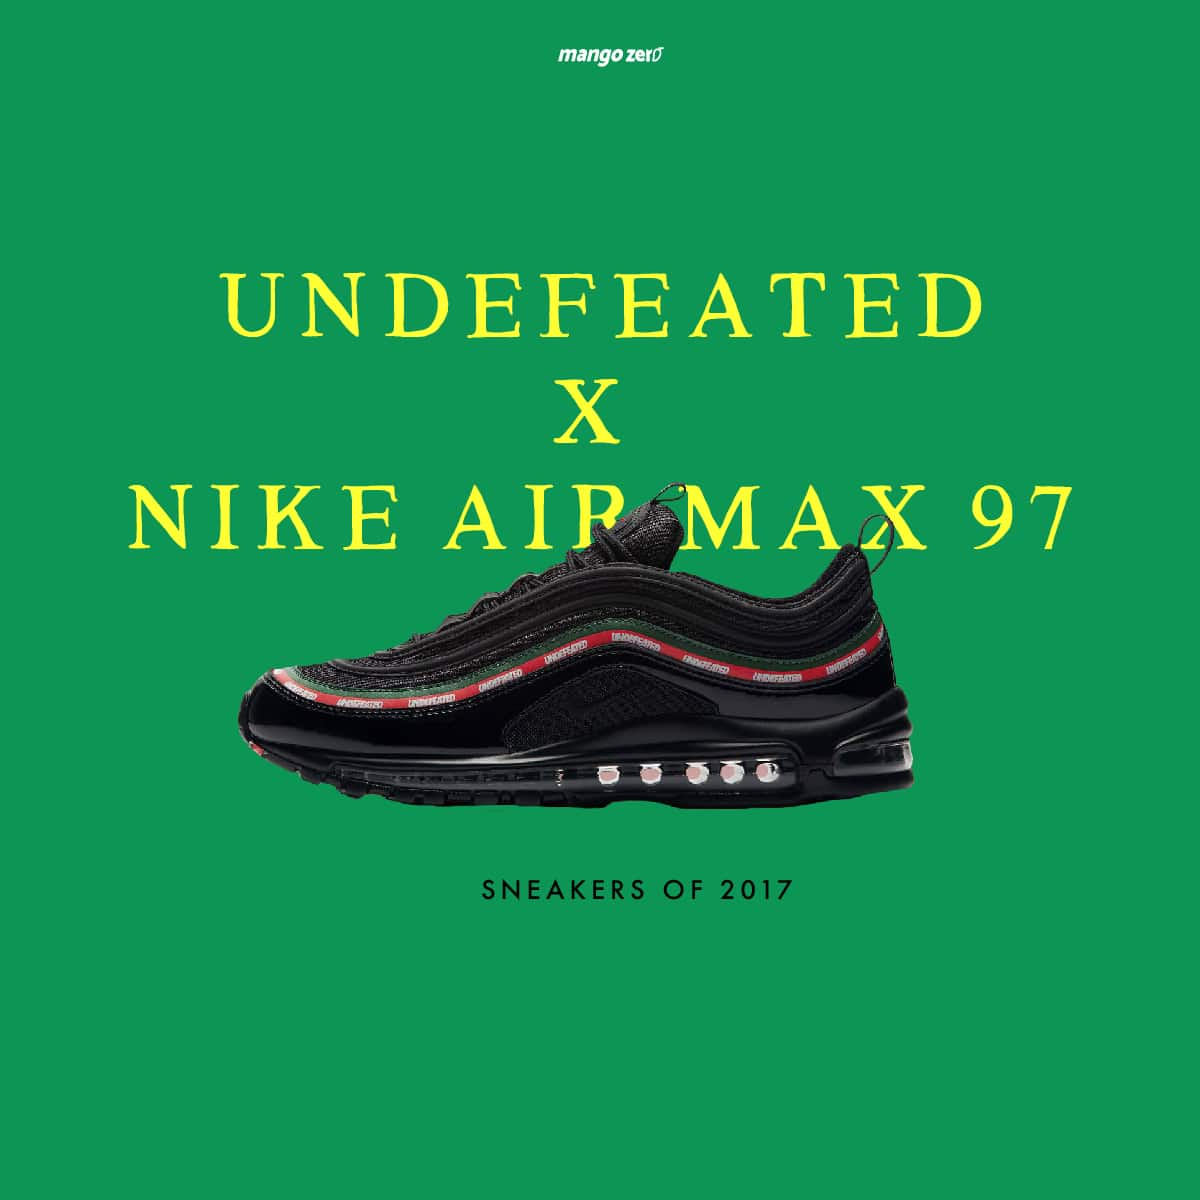 10-best-sneakers-of-2017-06